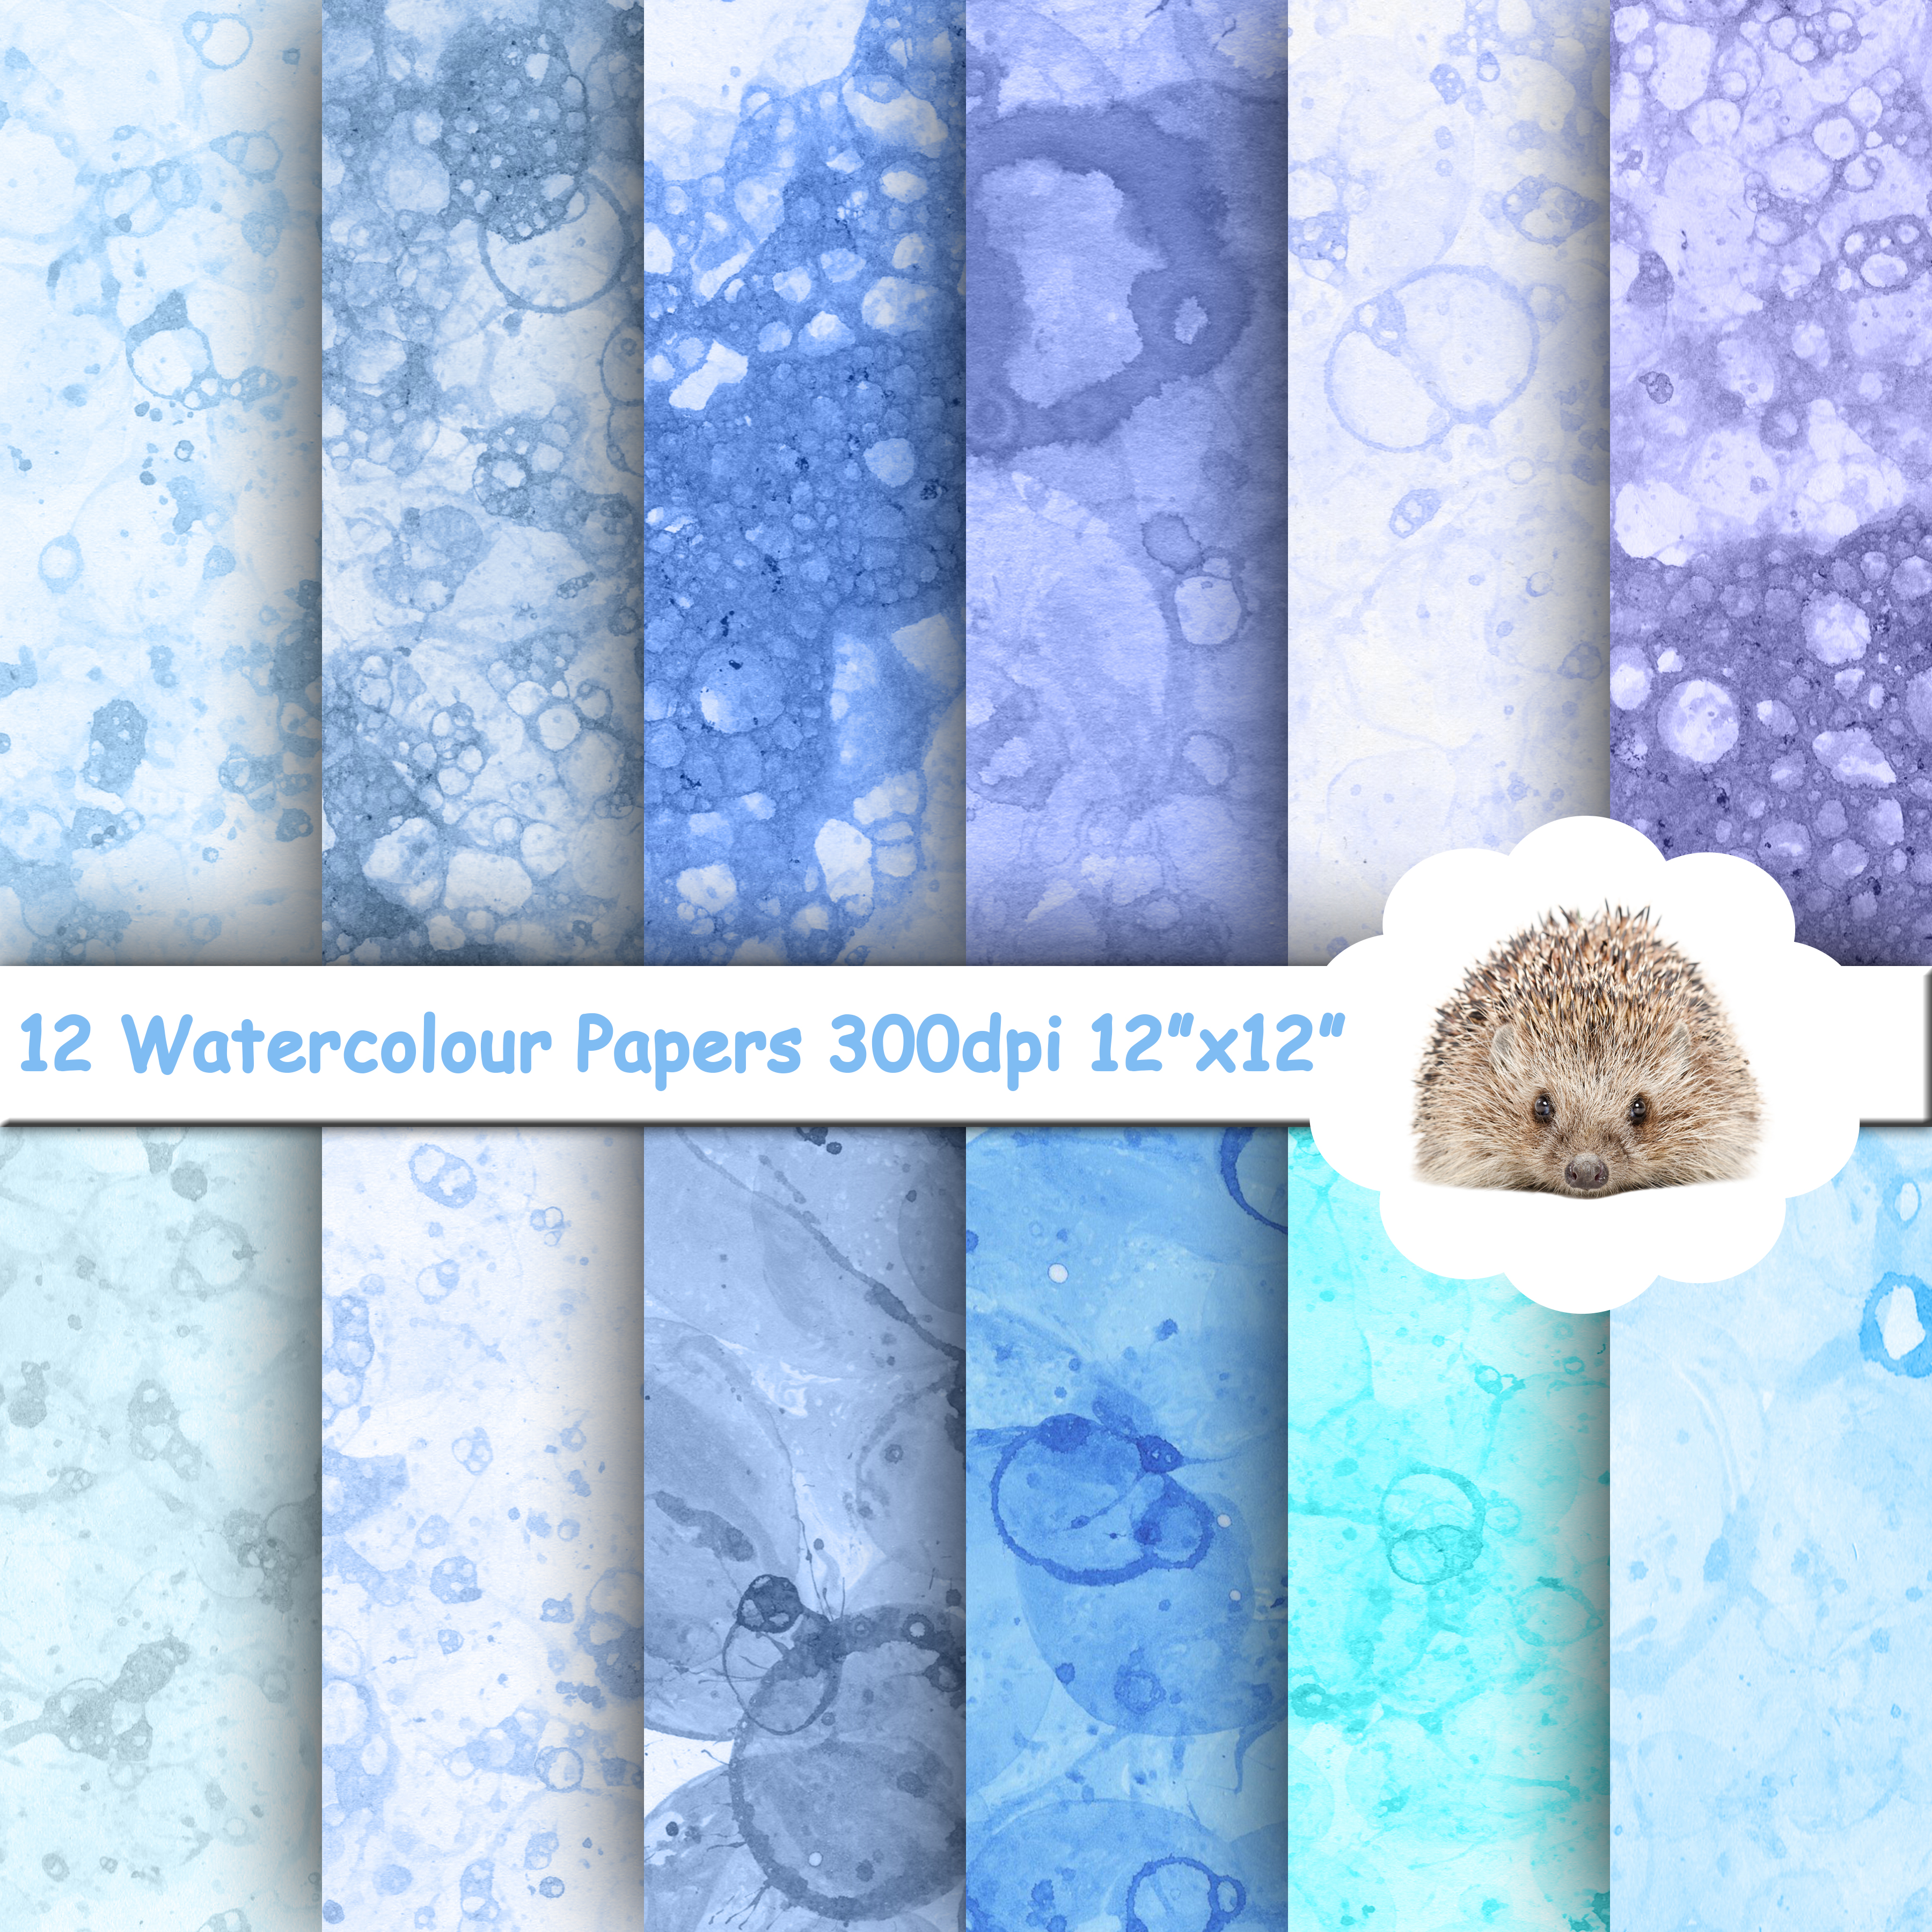 12 Blue Tones Watercolour Textured Paper / Backgrounds example image 1